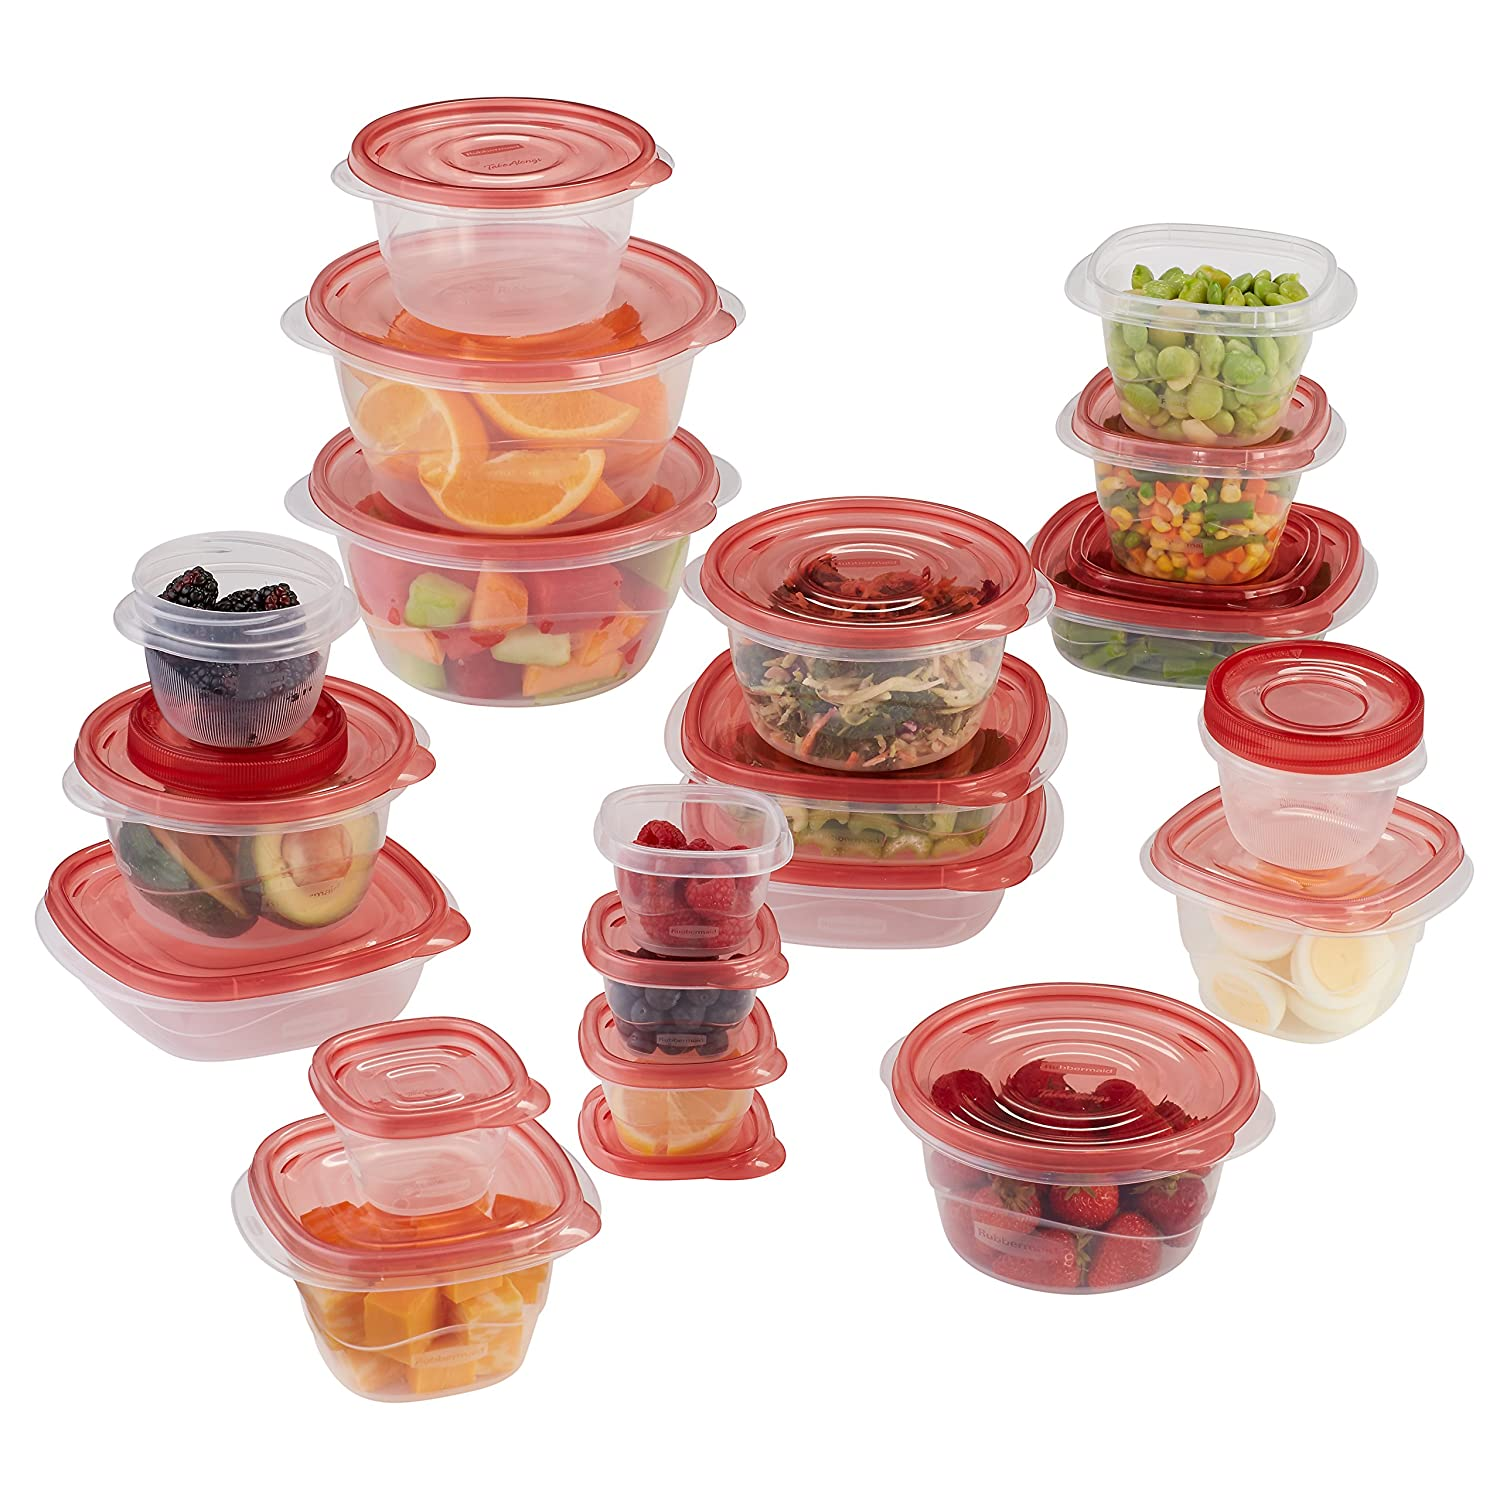 Rubbermaid TakeAlongs Assorted Food Storage Containers, Tint Chili, 40-Piece Set 1949248